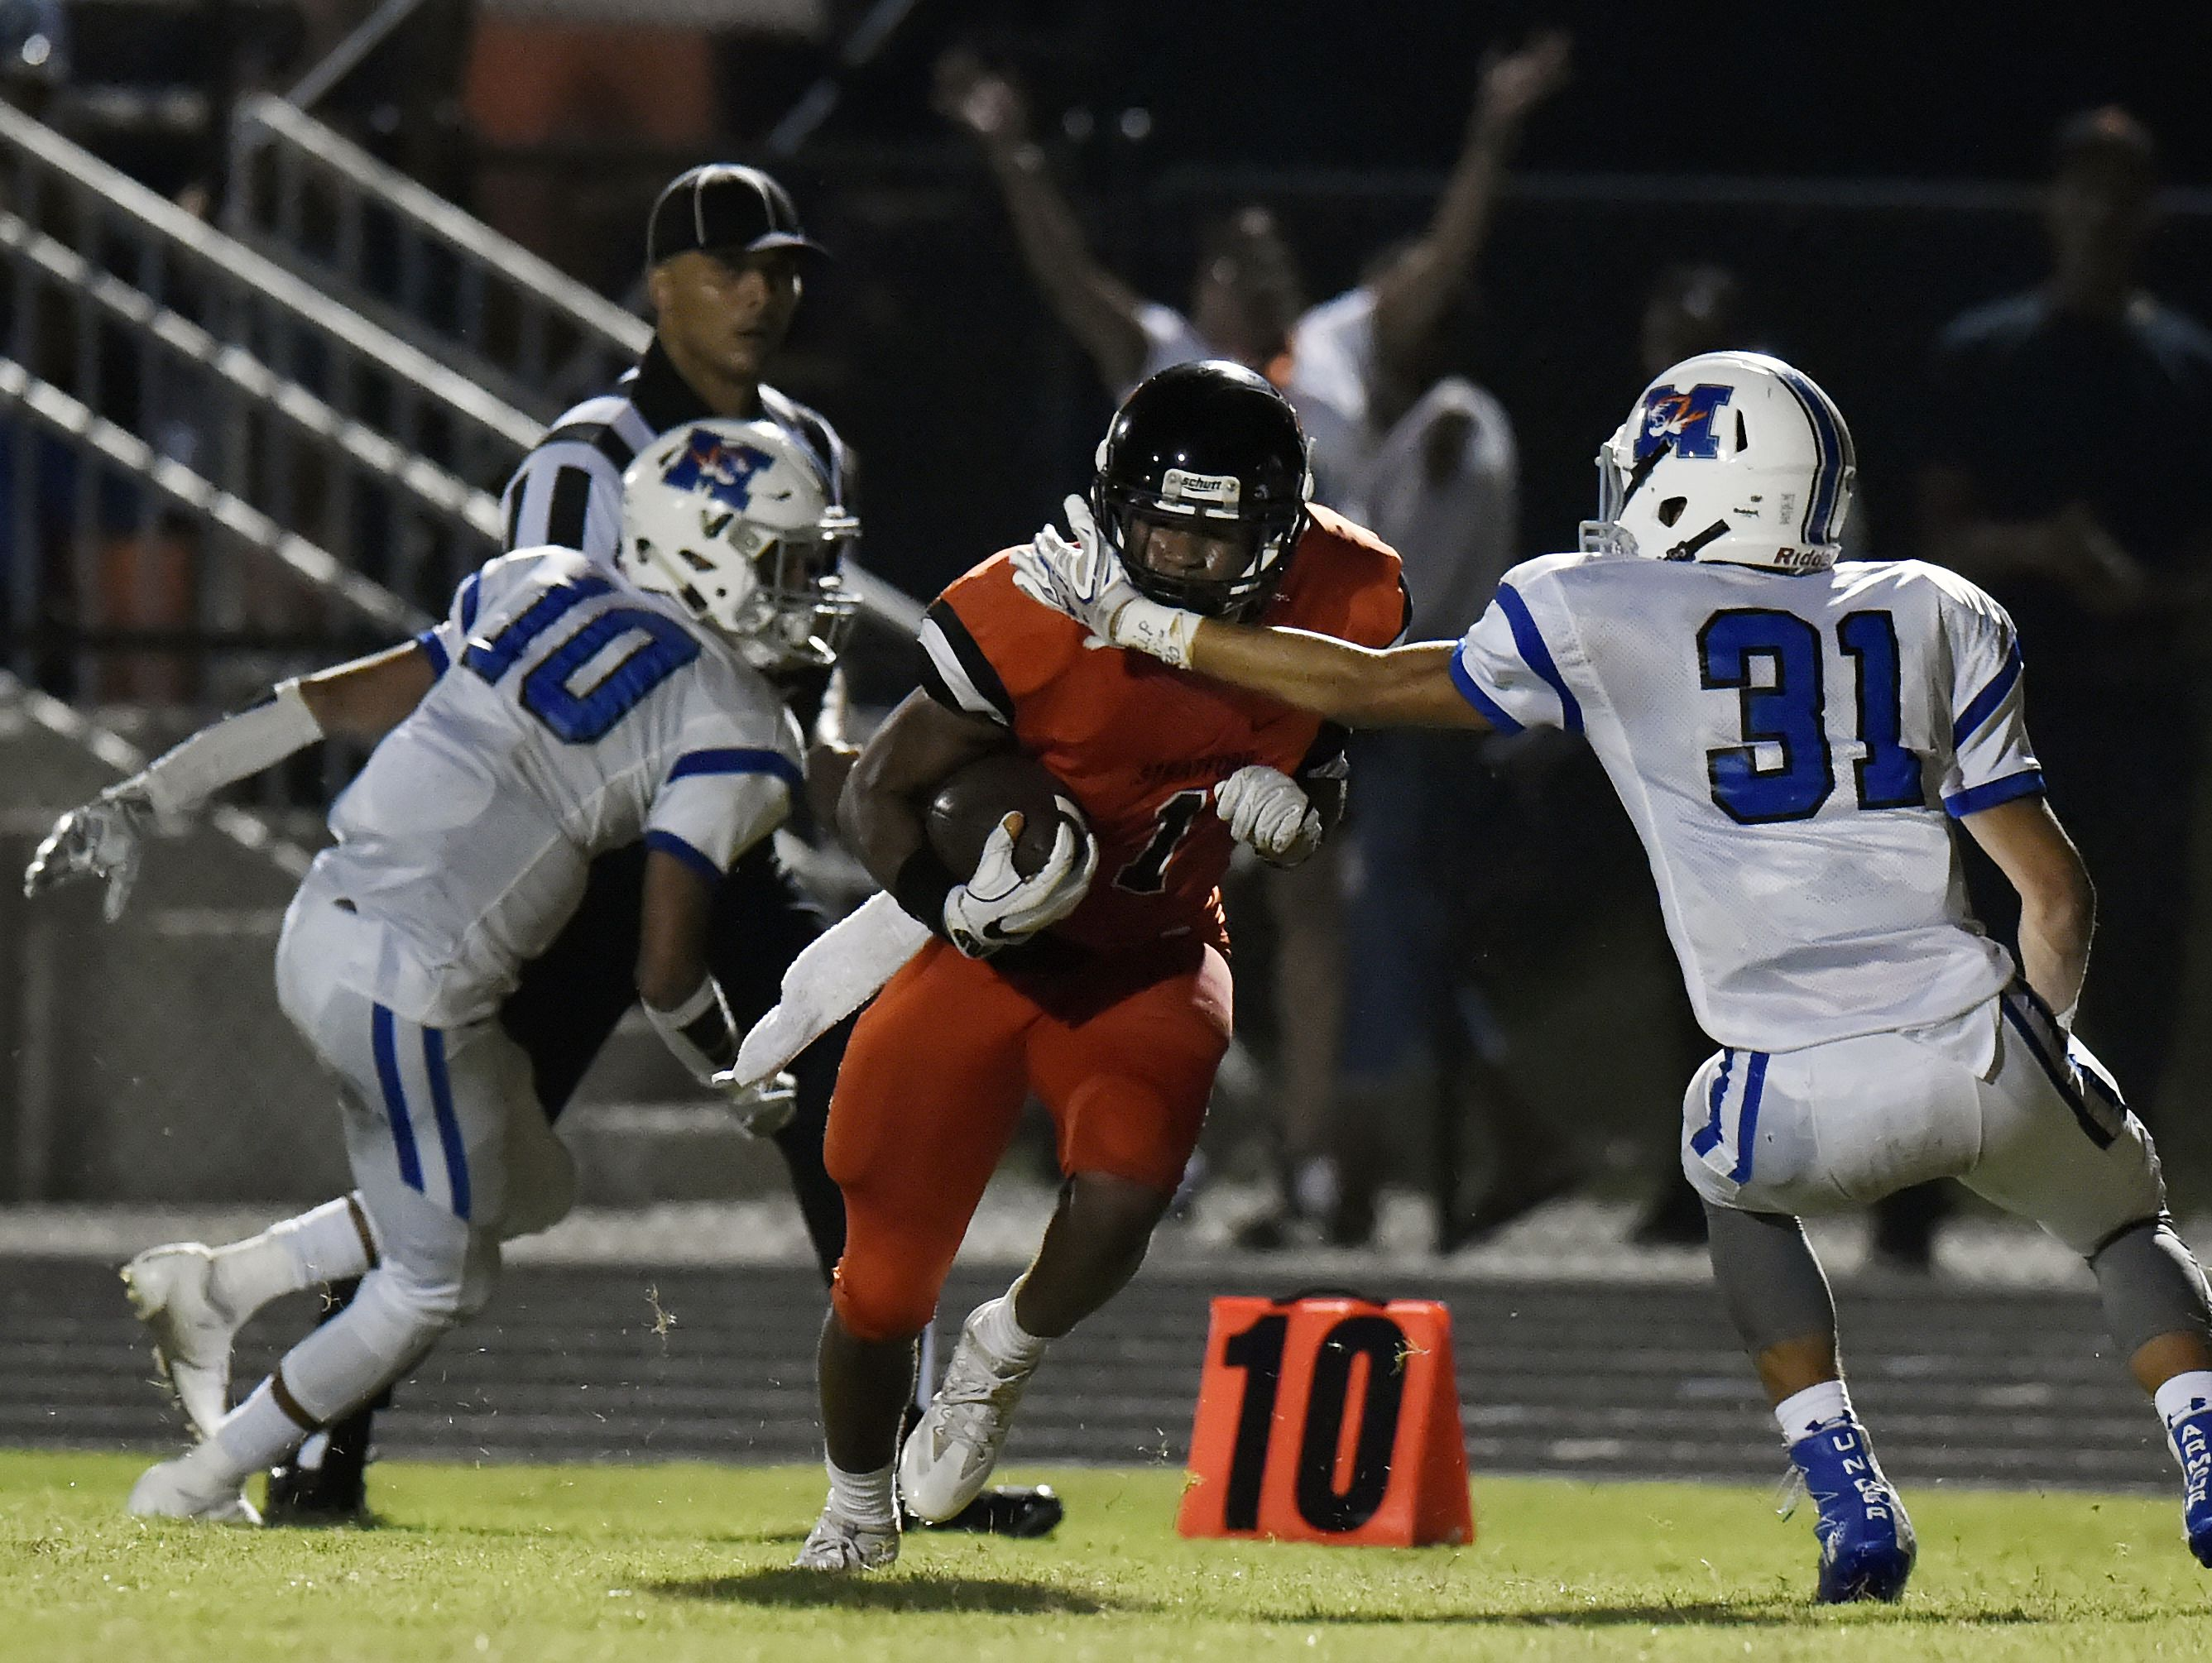 Stratford running back T.J.Carter, center, runs the ball between Marshall County's Tre Crutcher (10) and Donathon Tears (31) after pulling in a pass reception during second half of a high school football game on Friday, Sept. 23, 2016, in Nashville, Tenn. Stratford won 28-21.